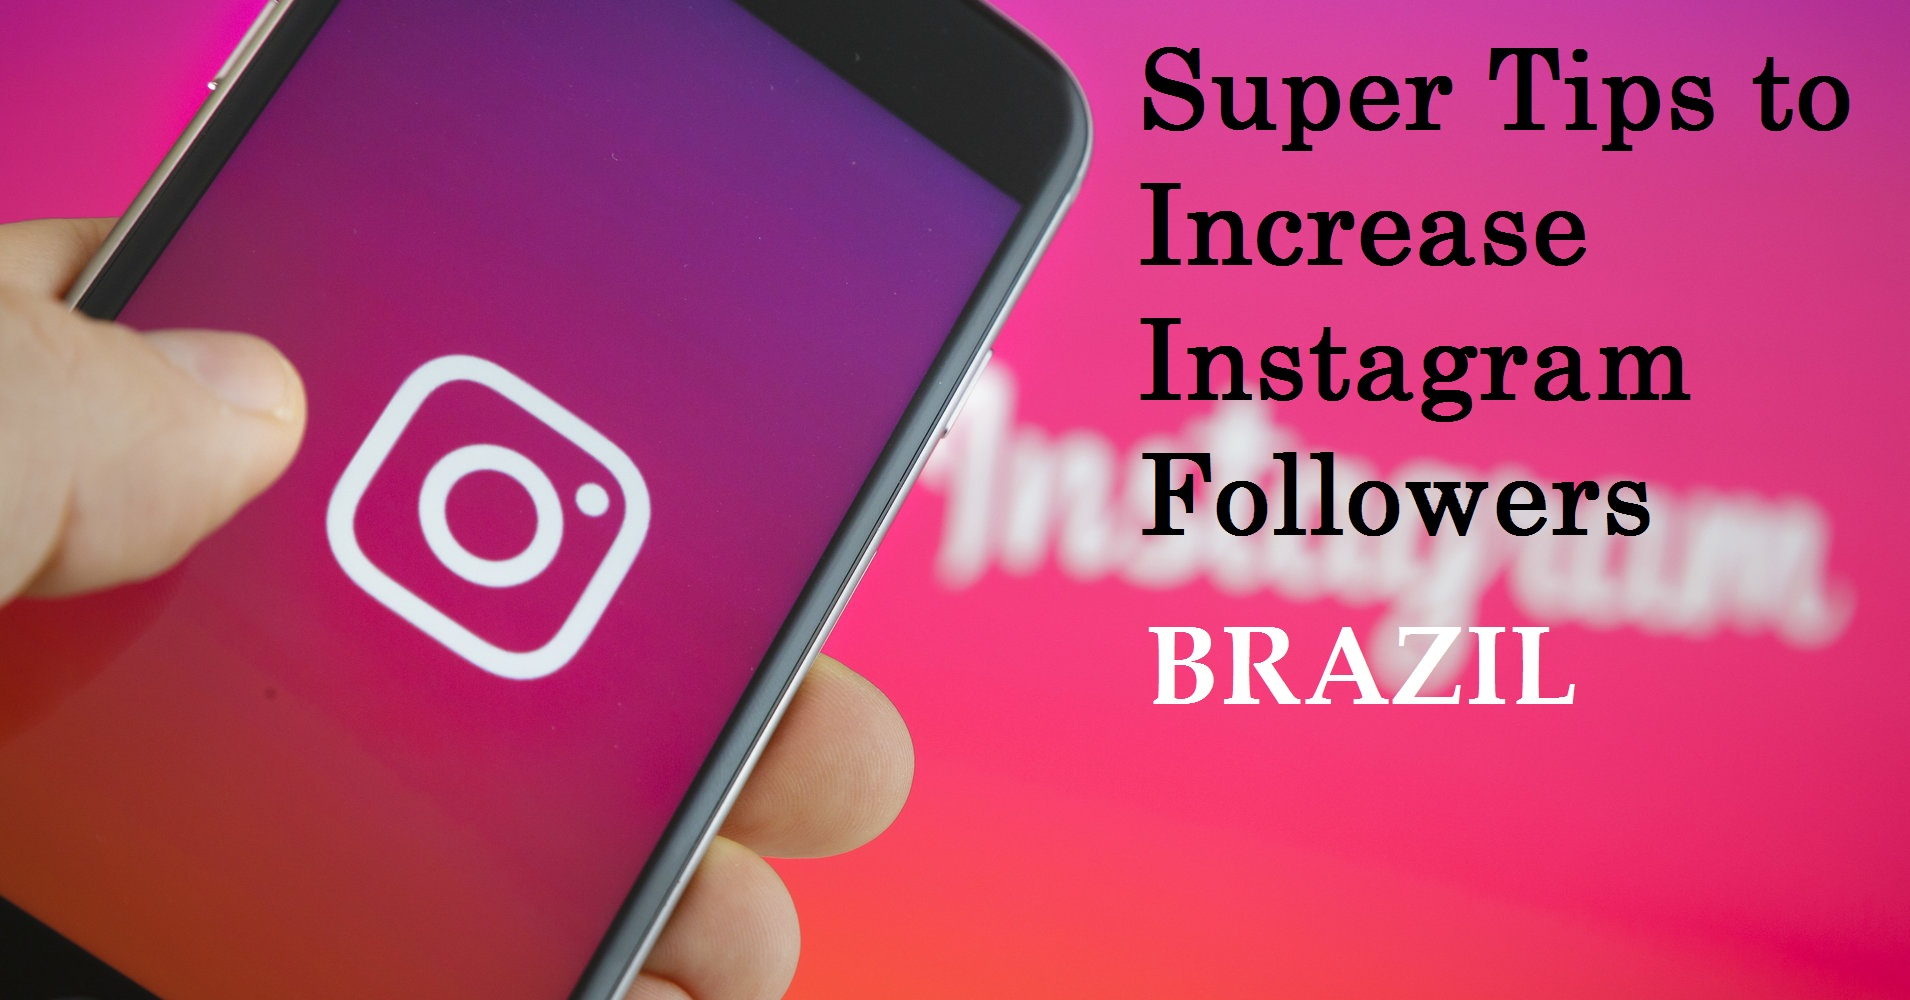 Instagram followers hack smmsumo 5 super tips to increase instagram followers ccuart Choice Image